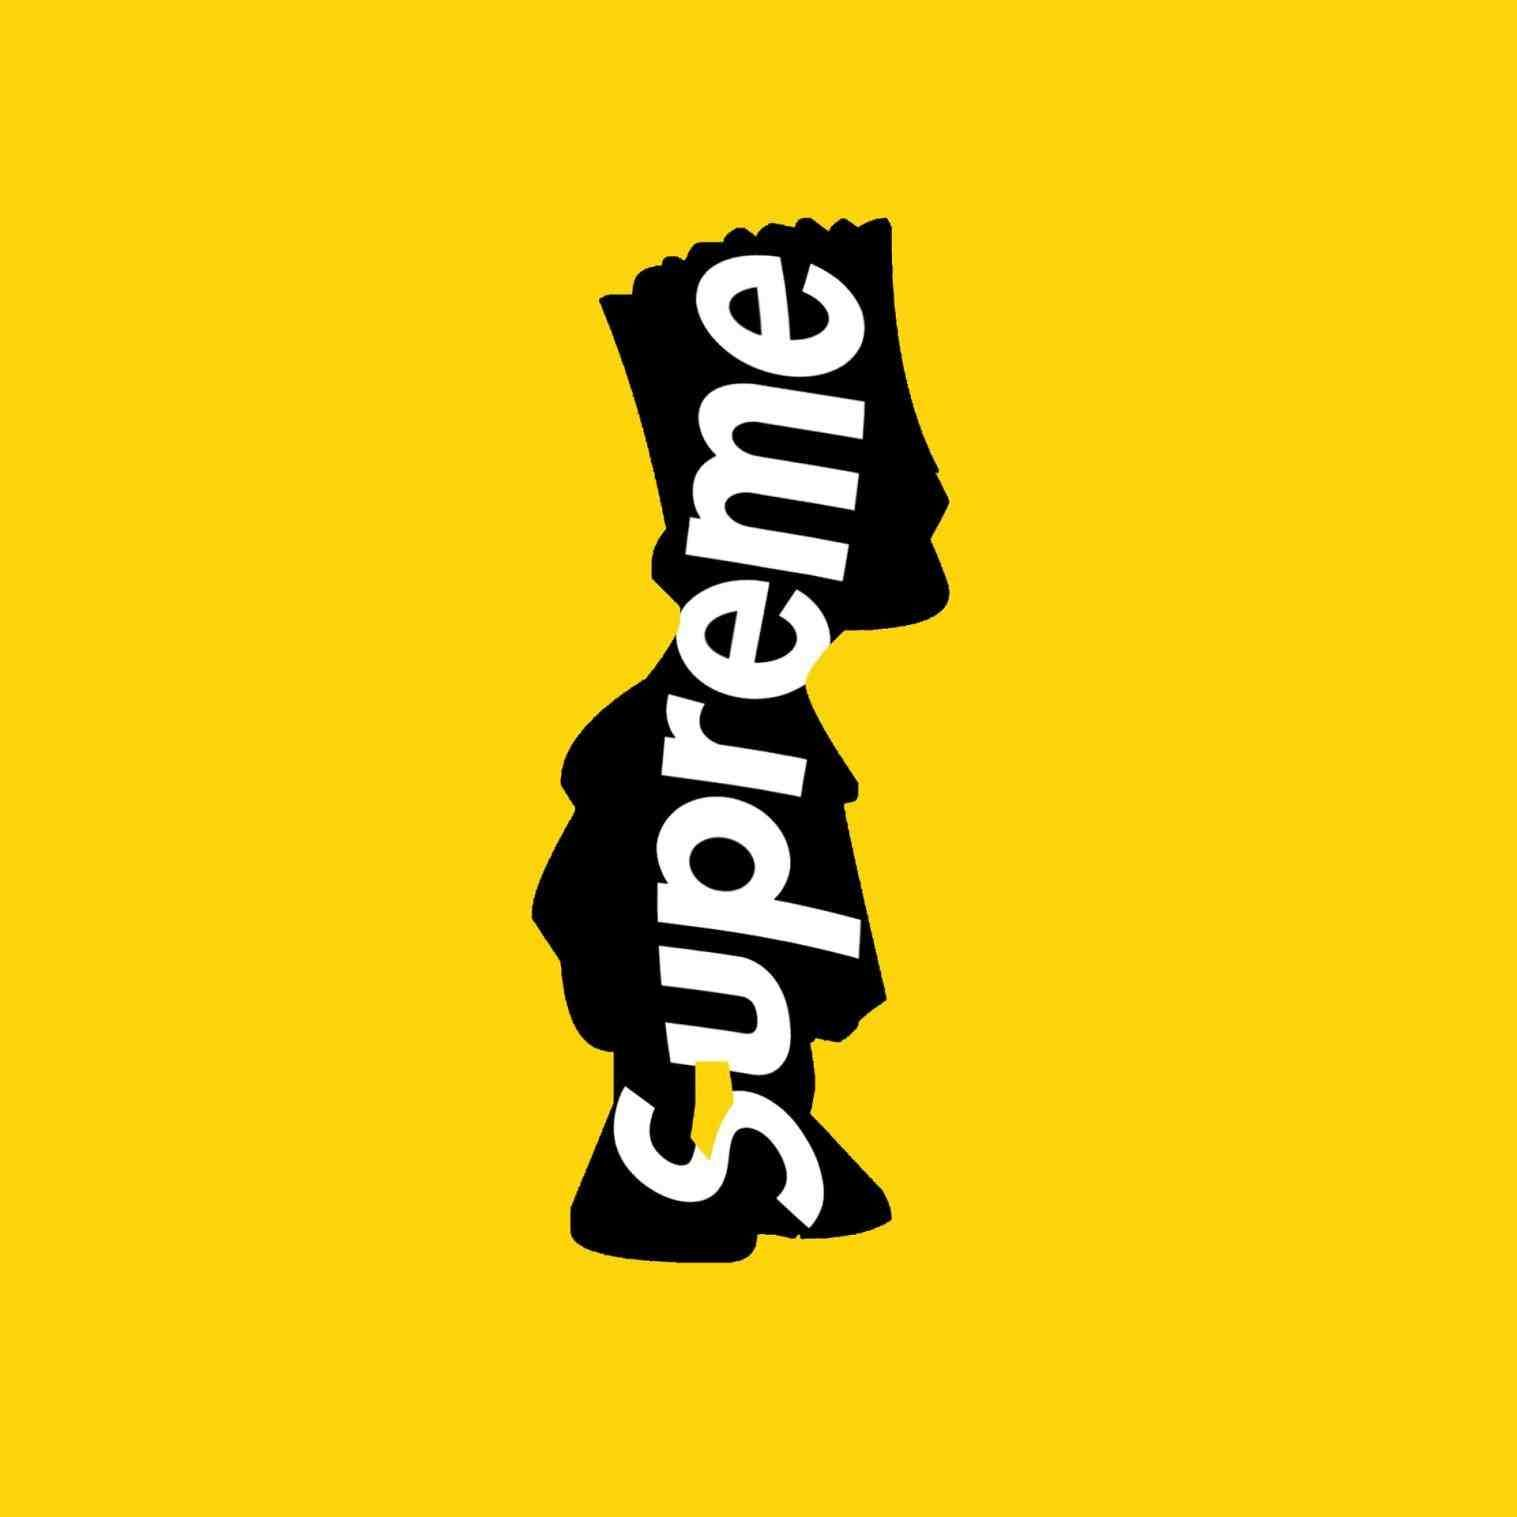 Hypebeast Bart Simpson Wallpapers   Top Hypebeast Bart 1517x1517